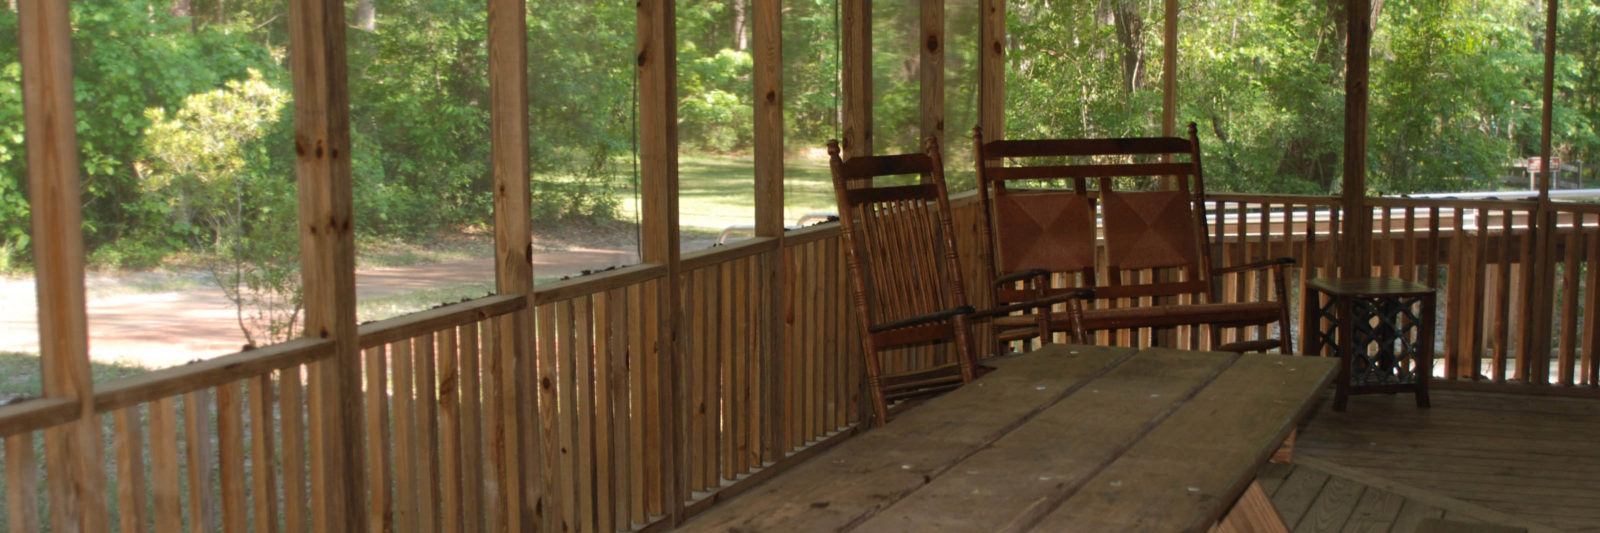 porch at Stephen Foster cabin